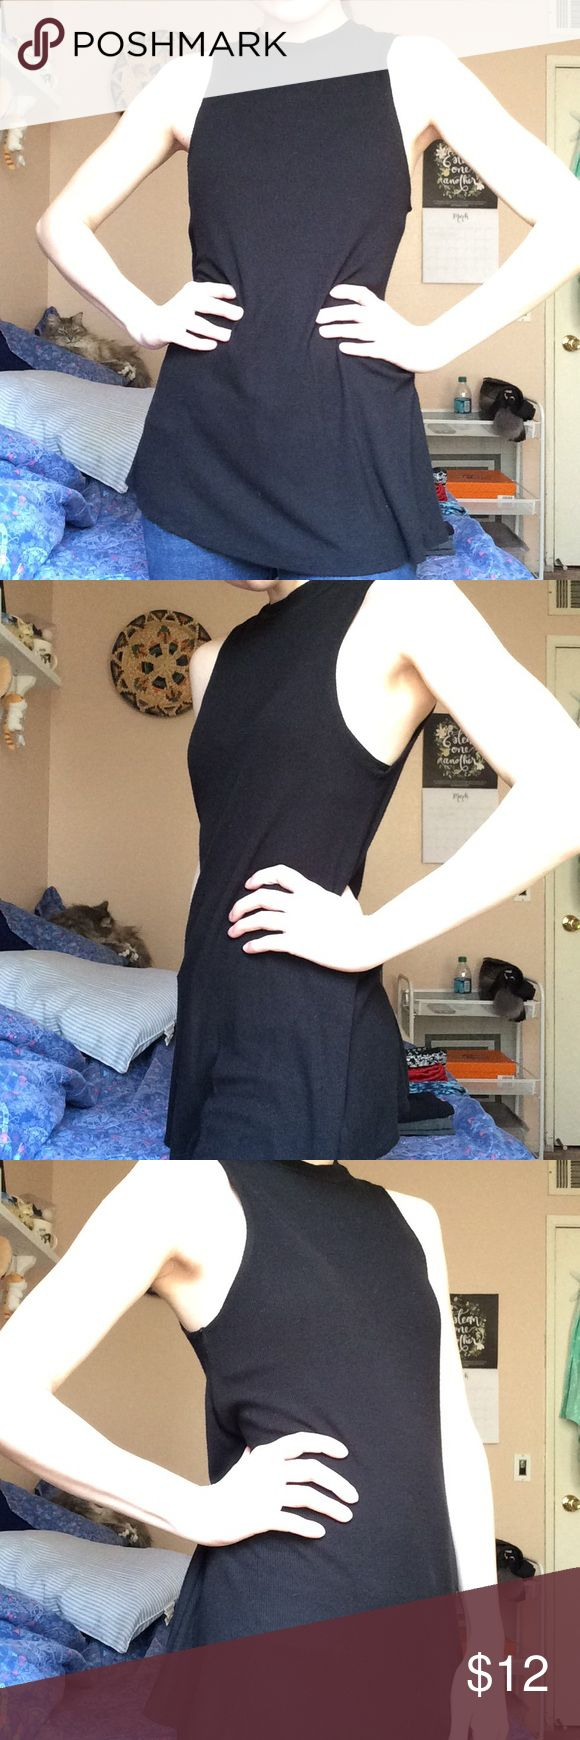 Long Black Sleeveless Turtleneck Top Worn a few times and is in perfect condition. Looks great with blue jeans or patterned leggings. Brand is Mossimo. Mossimo Supply Co Tops Tunics